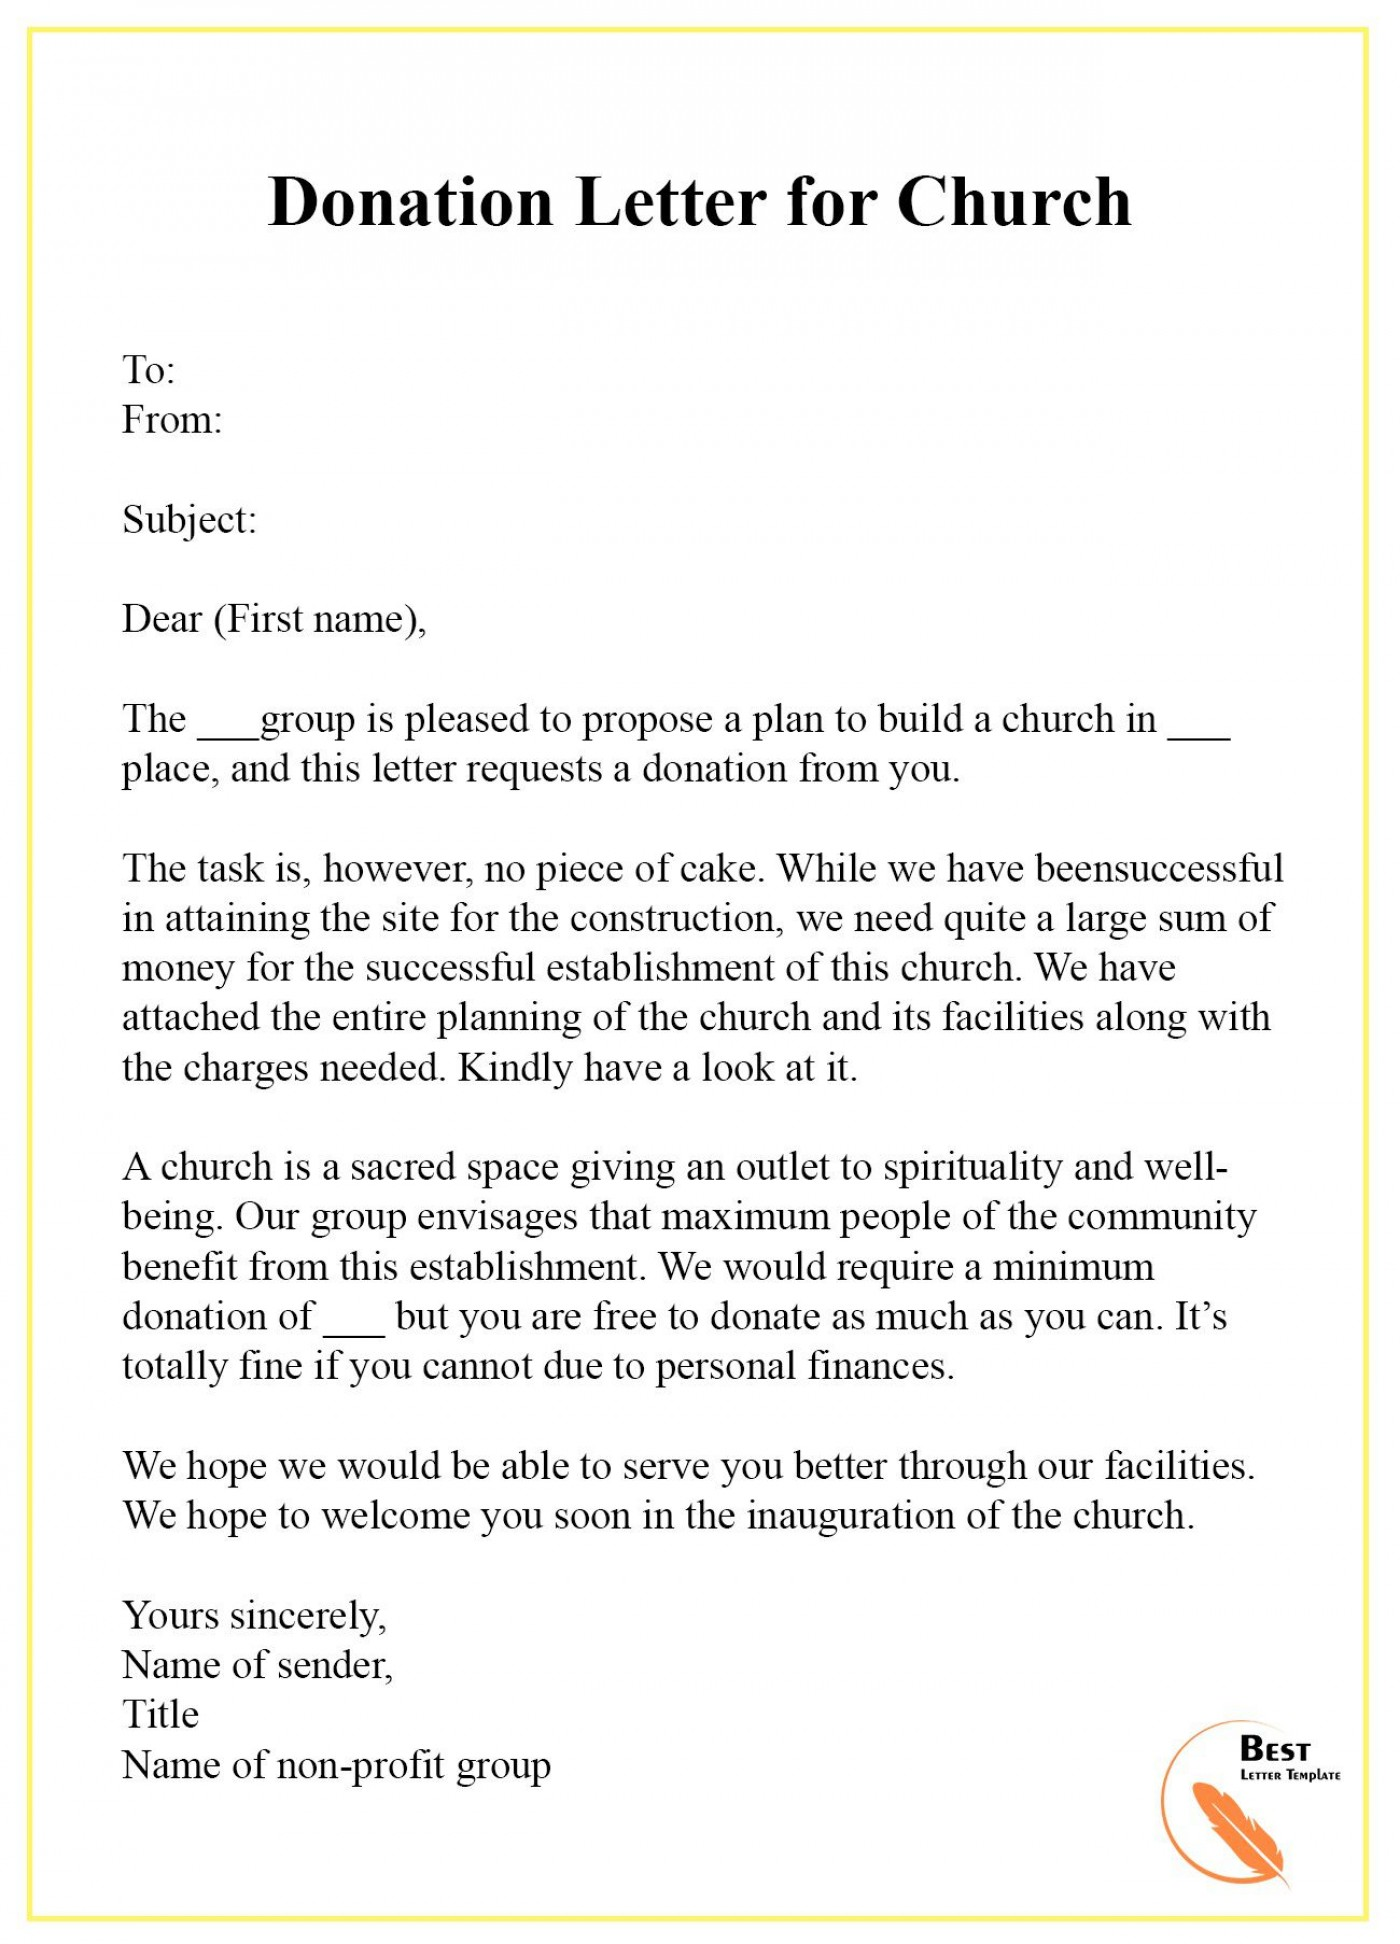 003 Amazing Fund Raising Letter Template High Definition  Fundraising For Mission Trip School Sample Of A Nonprofit Organization1400